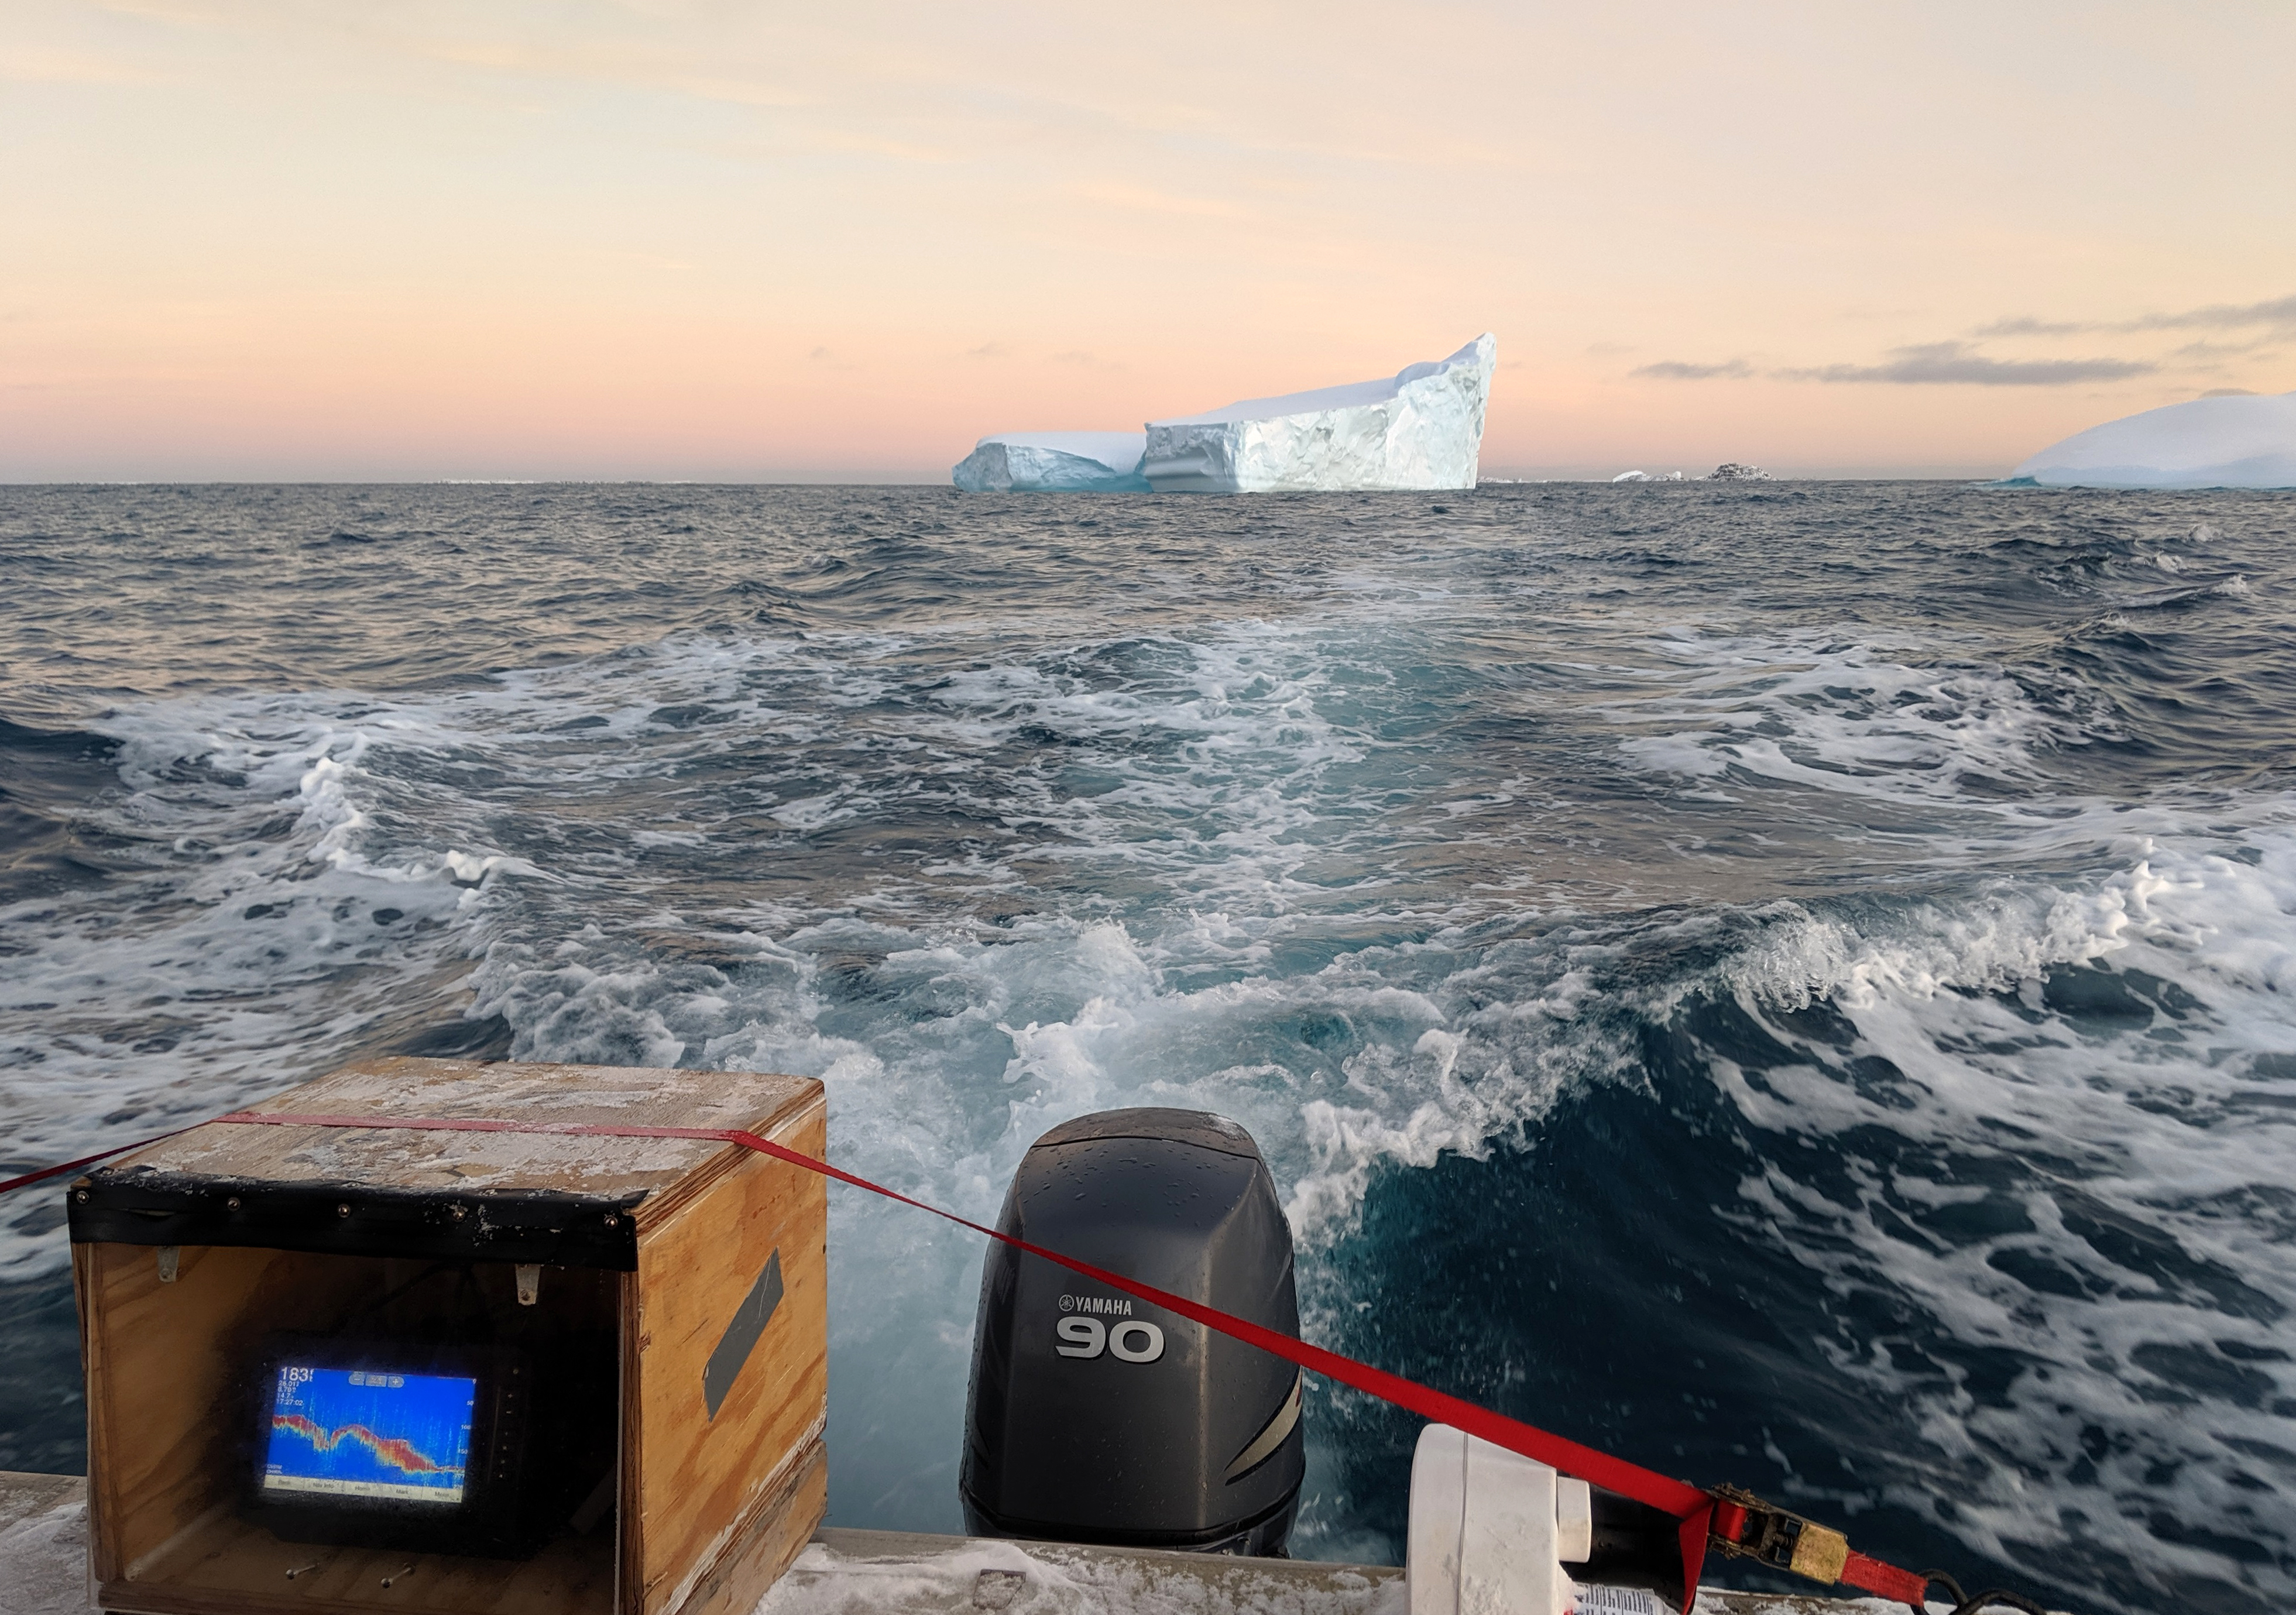 A view of a motorboat wake with an iceberg in the distance.